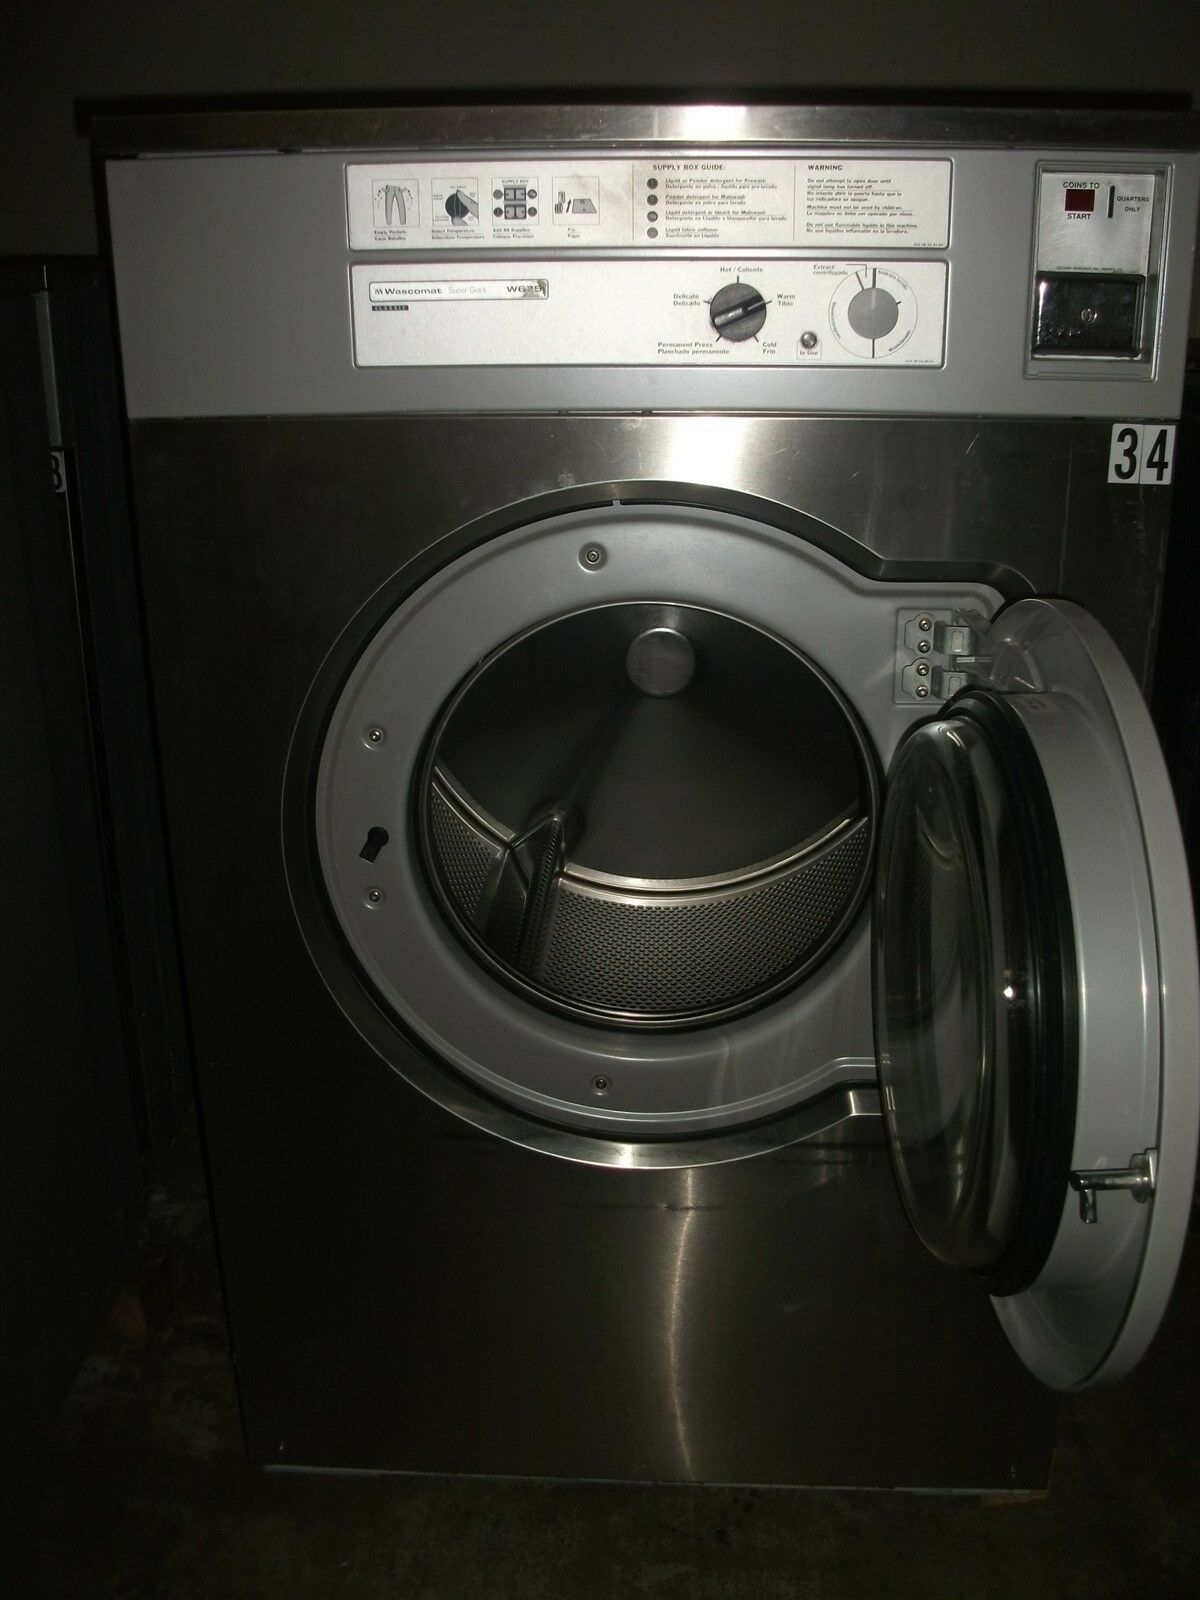 Coin Washer And Dryer >> Wascomat W675 75 LB Washer/Extractor 3ph Used | eBay